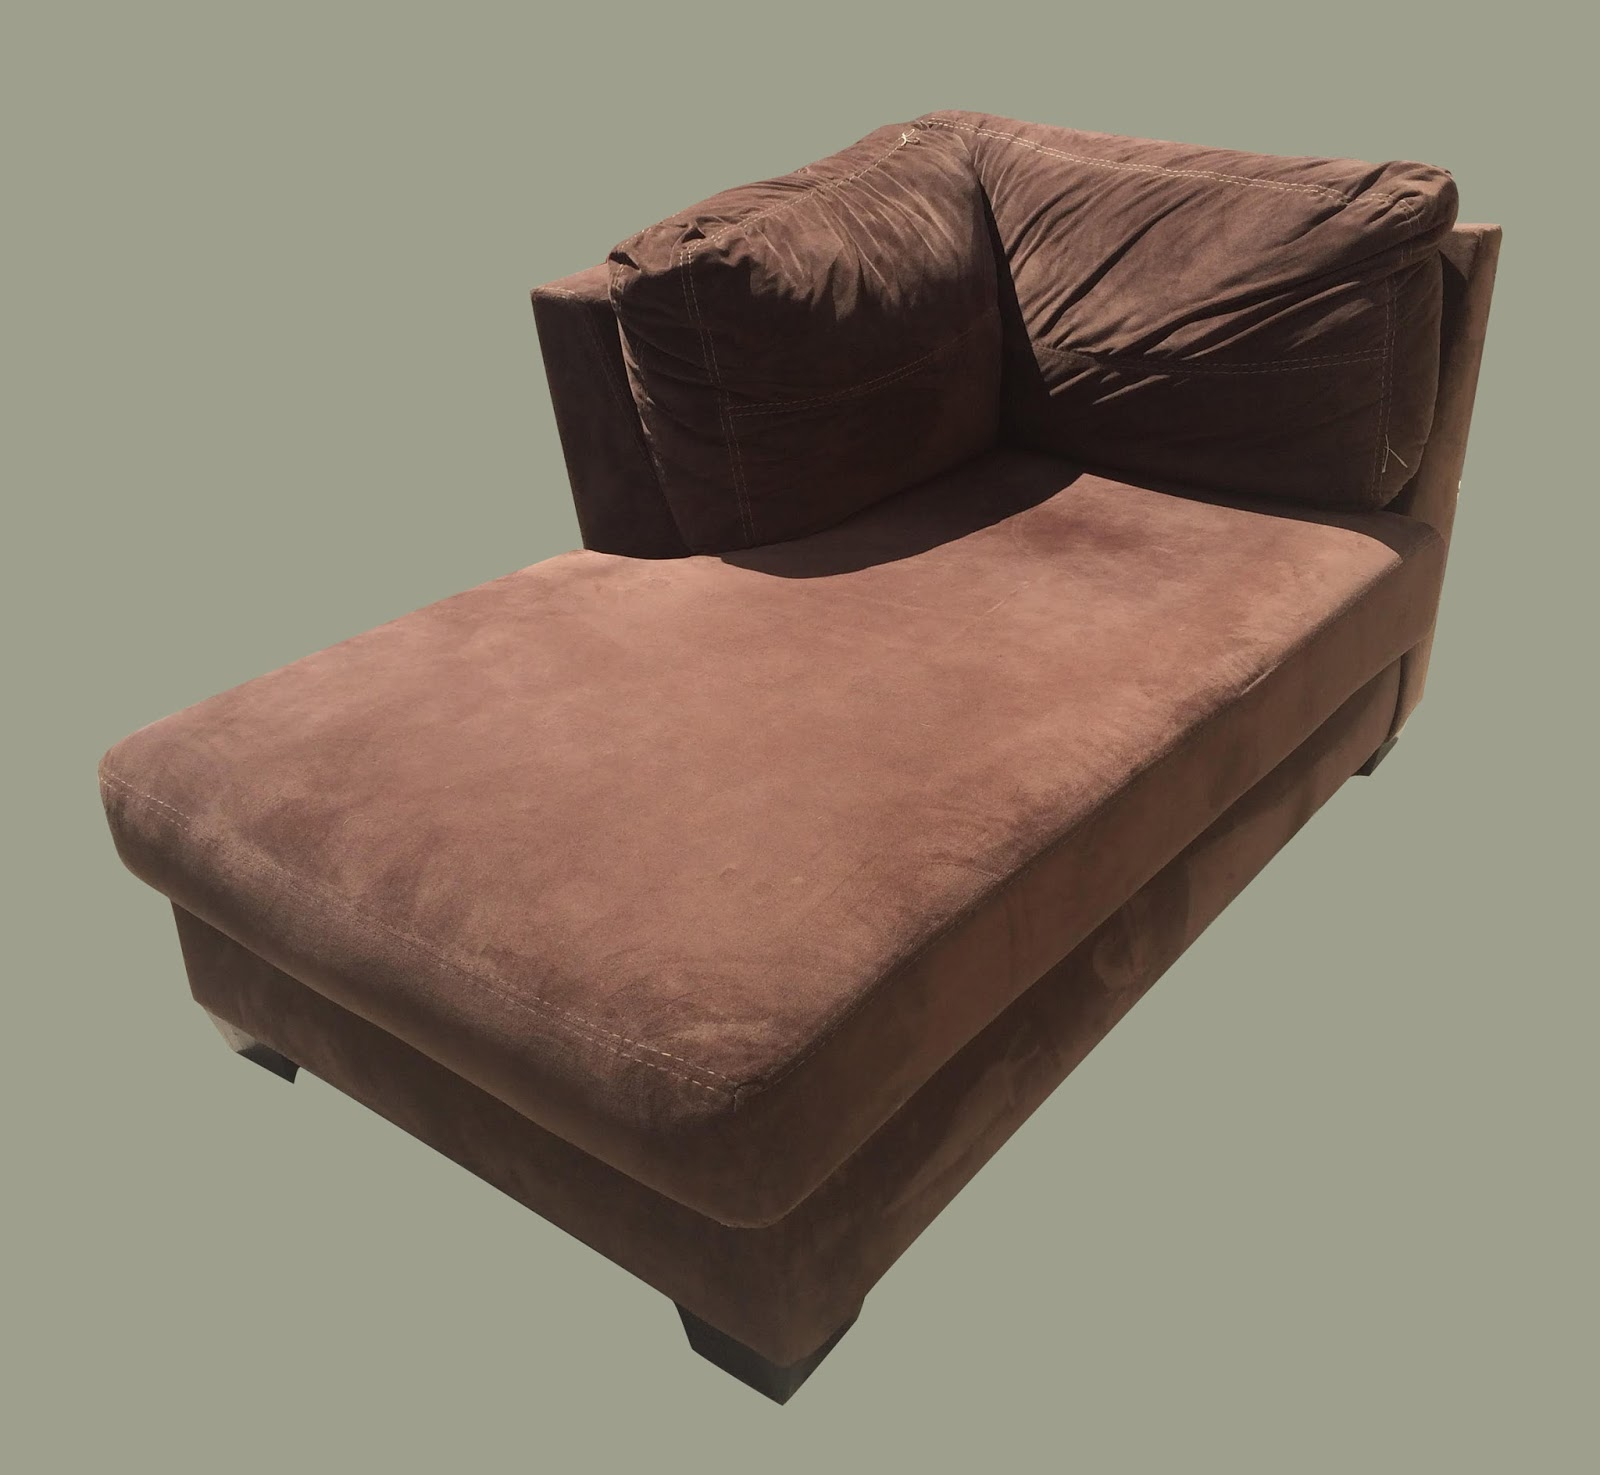 uhuru furniture collectibles chocolate chaise 175. Black Bedroom Furniture Sets. Home Design Ideas